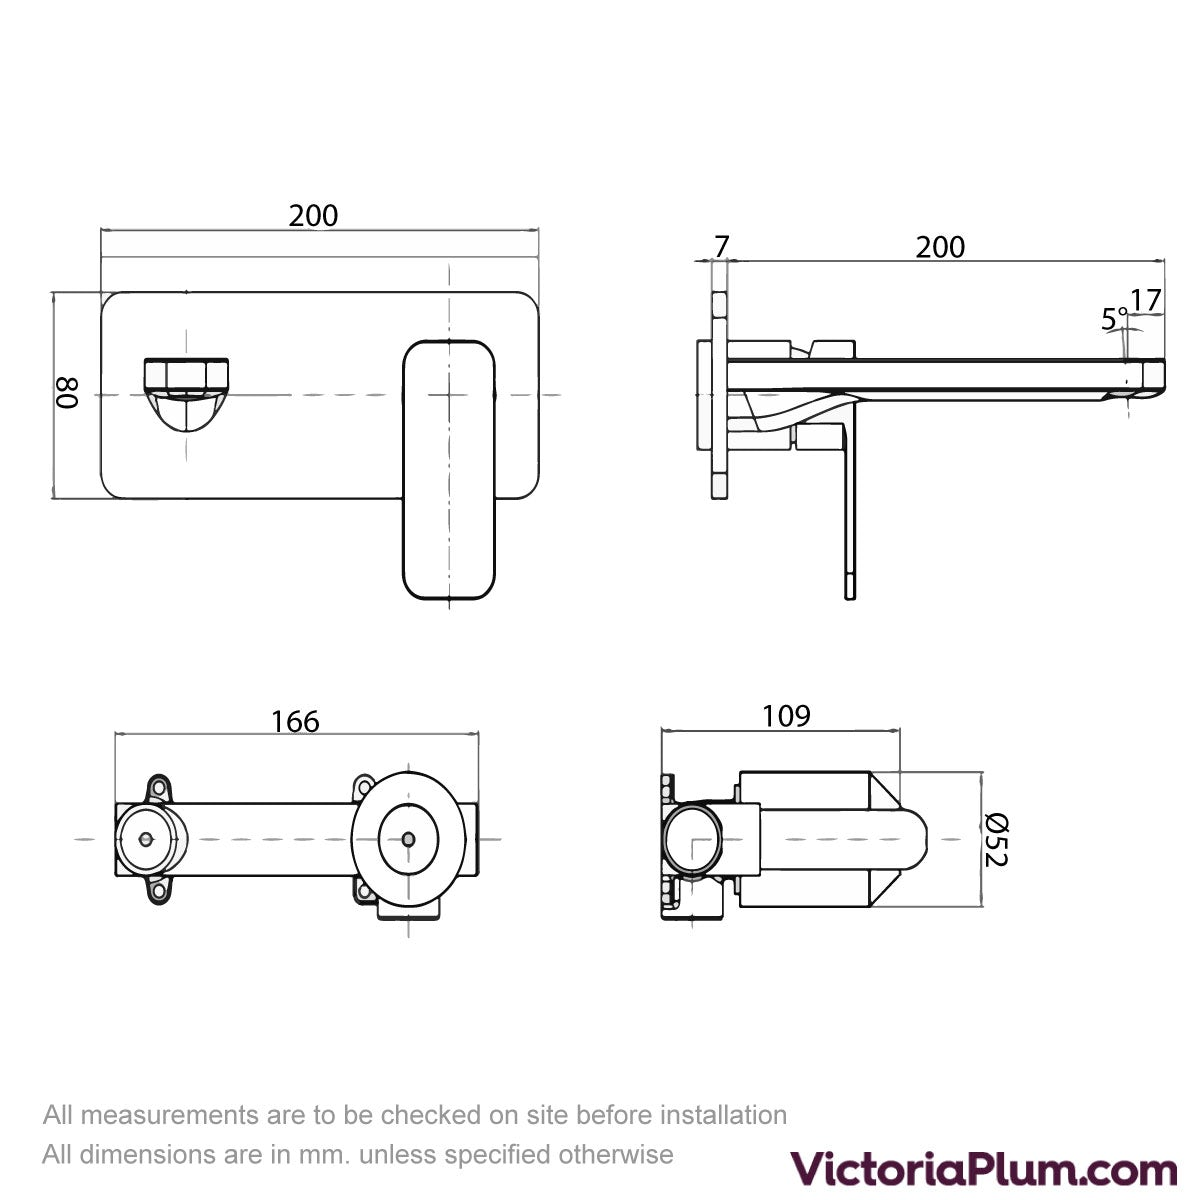 Dimensions for Mode Spencer square wall mounted rose gold basin mixer tap